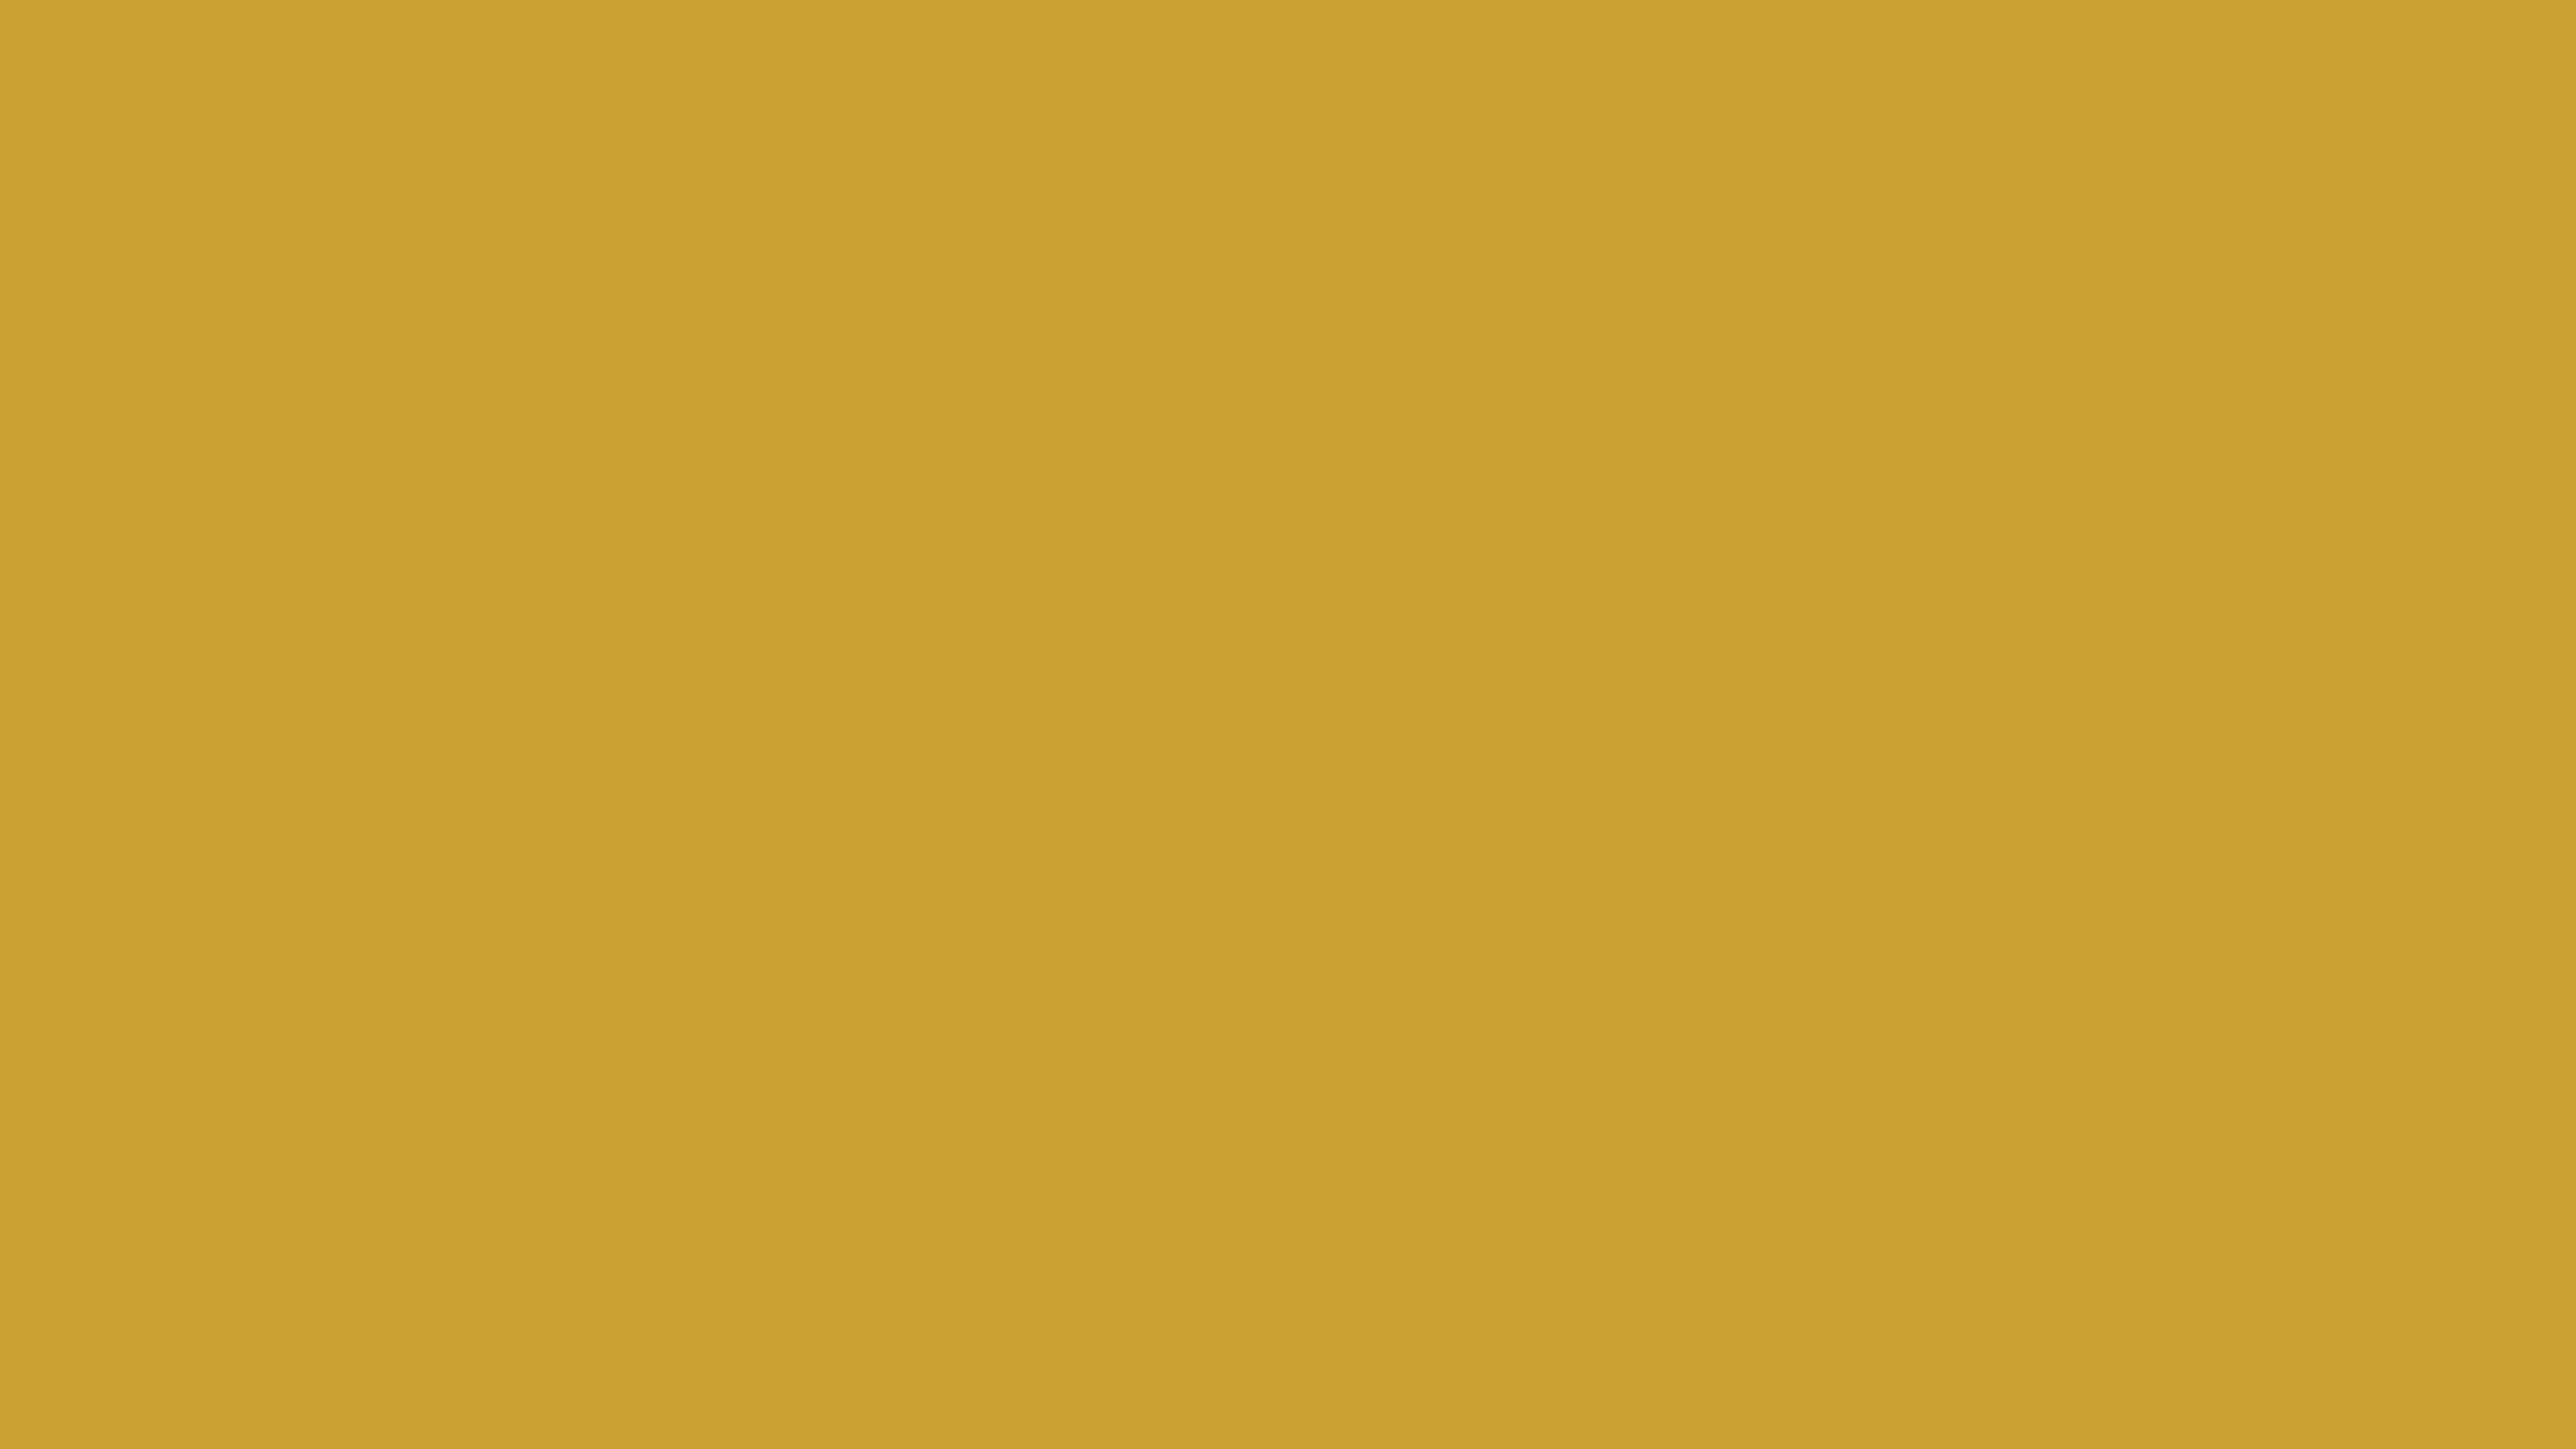 7680x4320 Satin Sheen Gold Solid Color Background